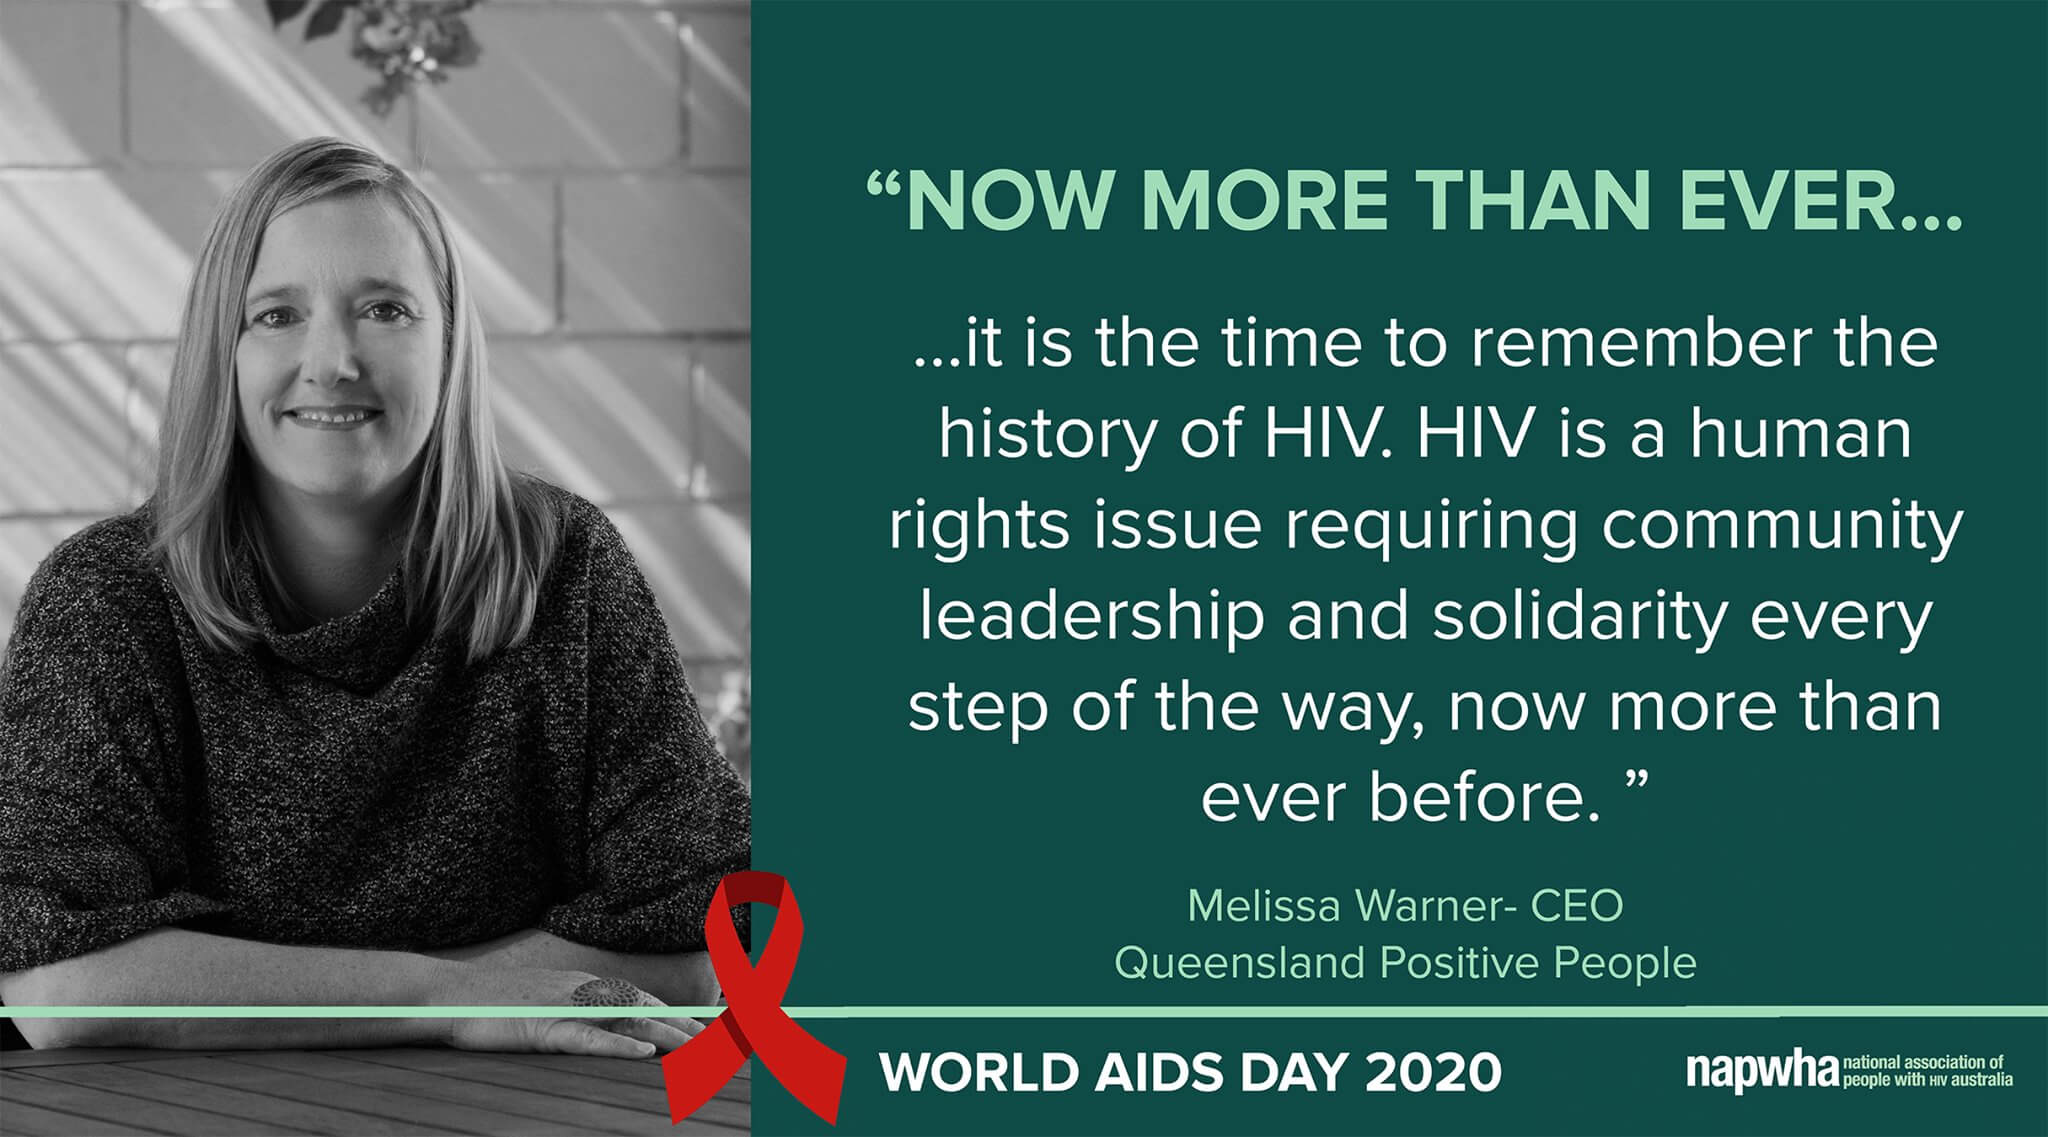 Melissa Warner, CEO of Queensland Positive People provides a World AIDS Day 2020 message